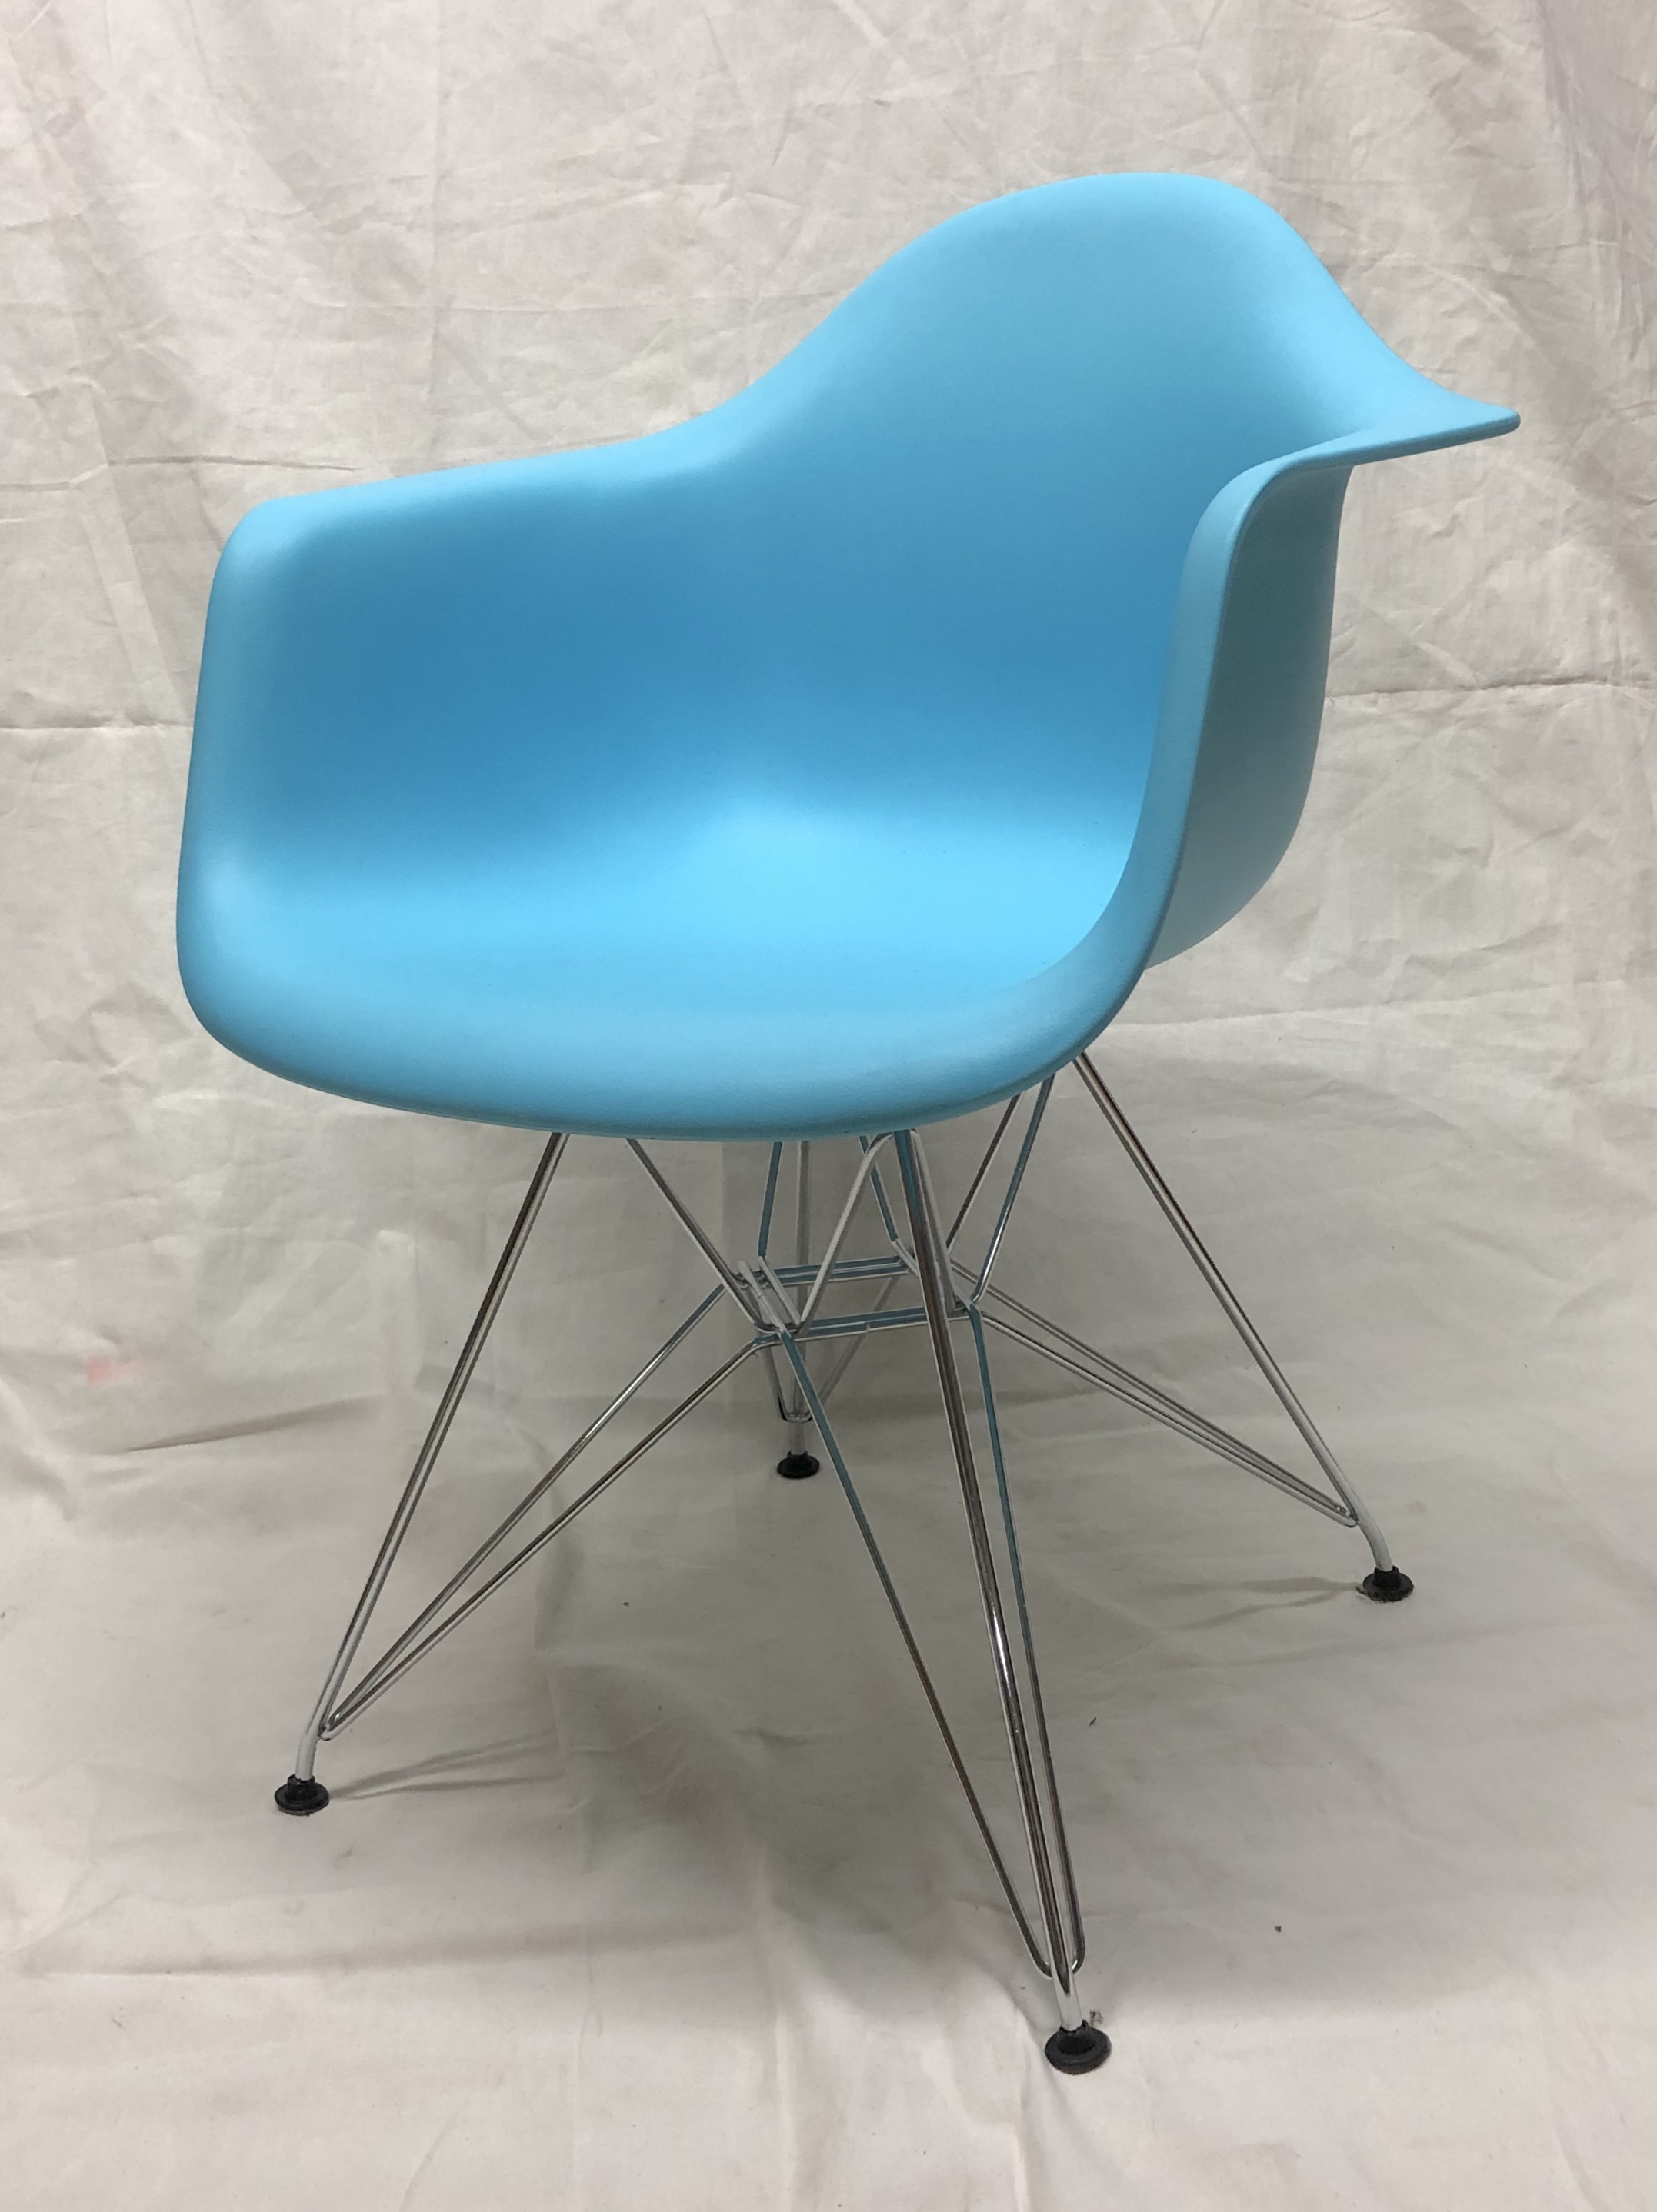 Molded Plastic Arm Chair - $25